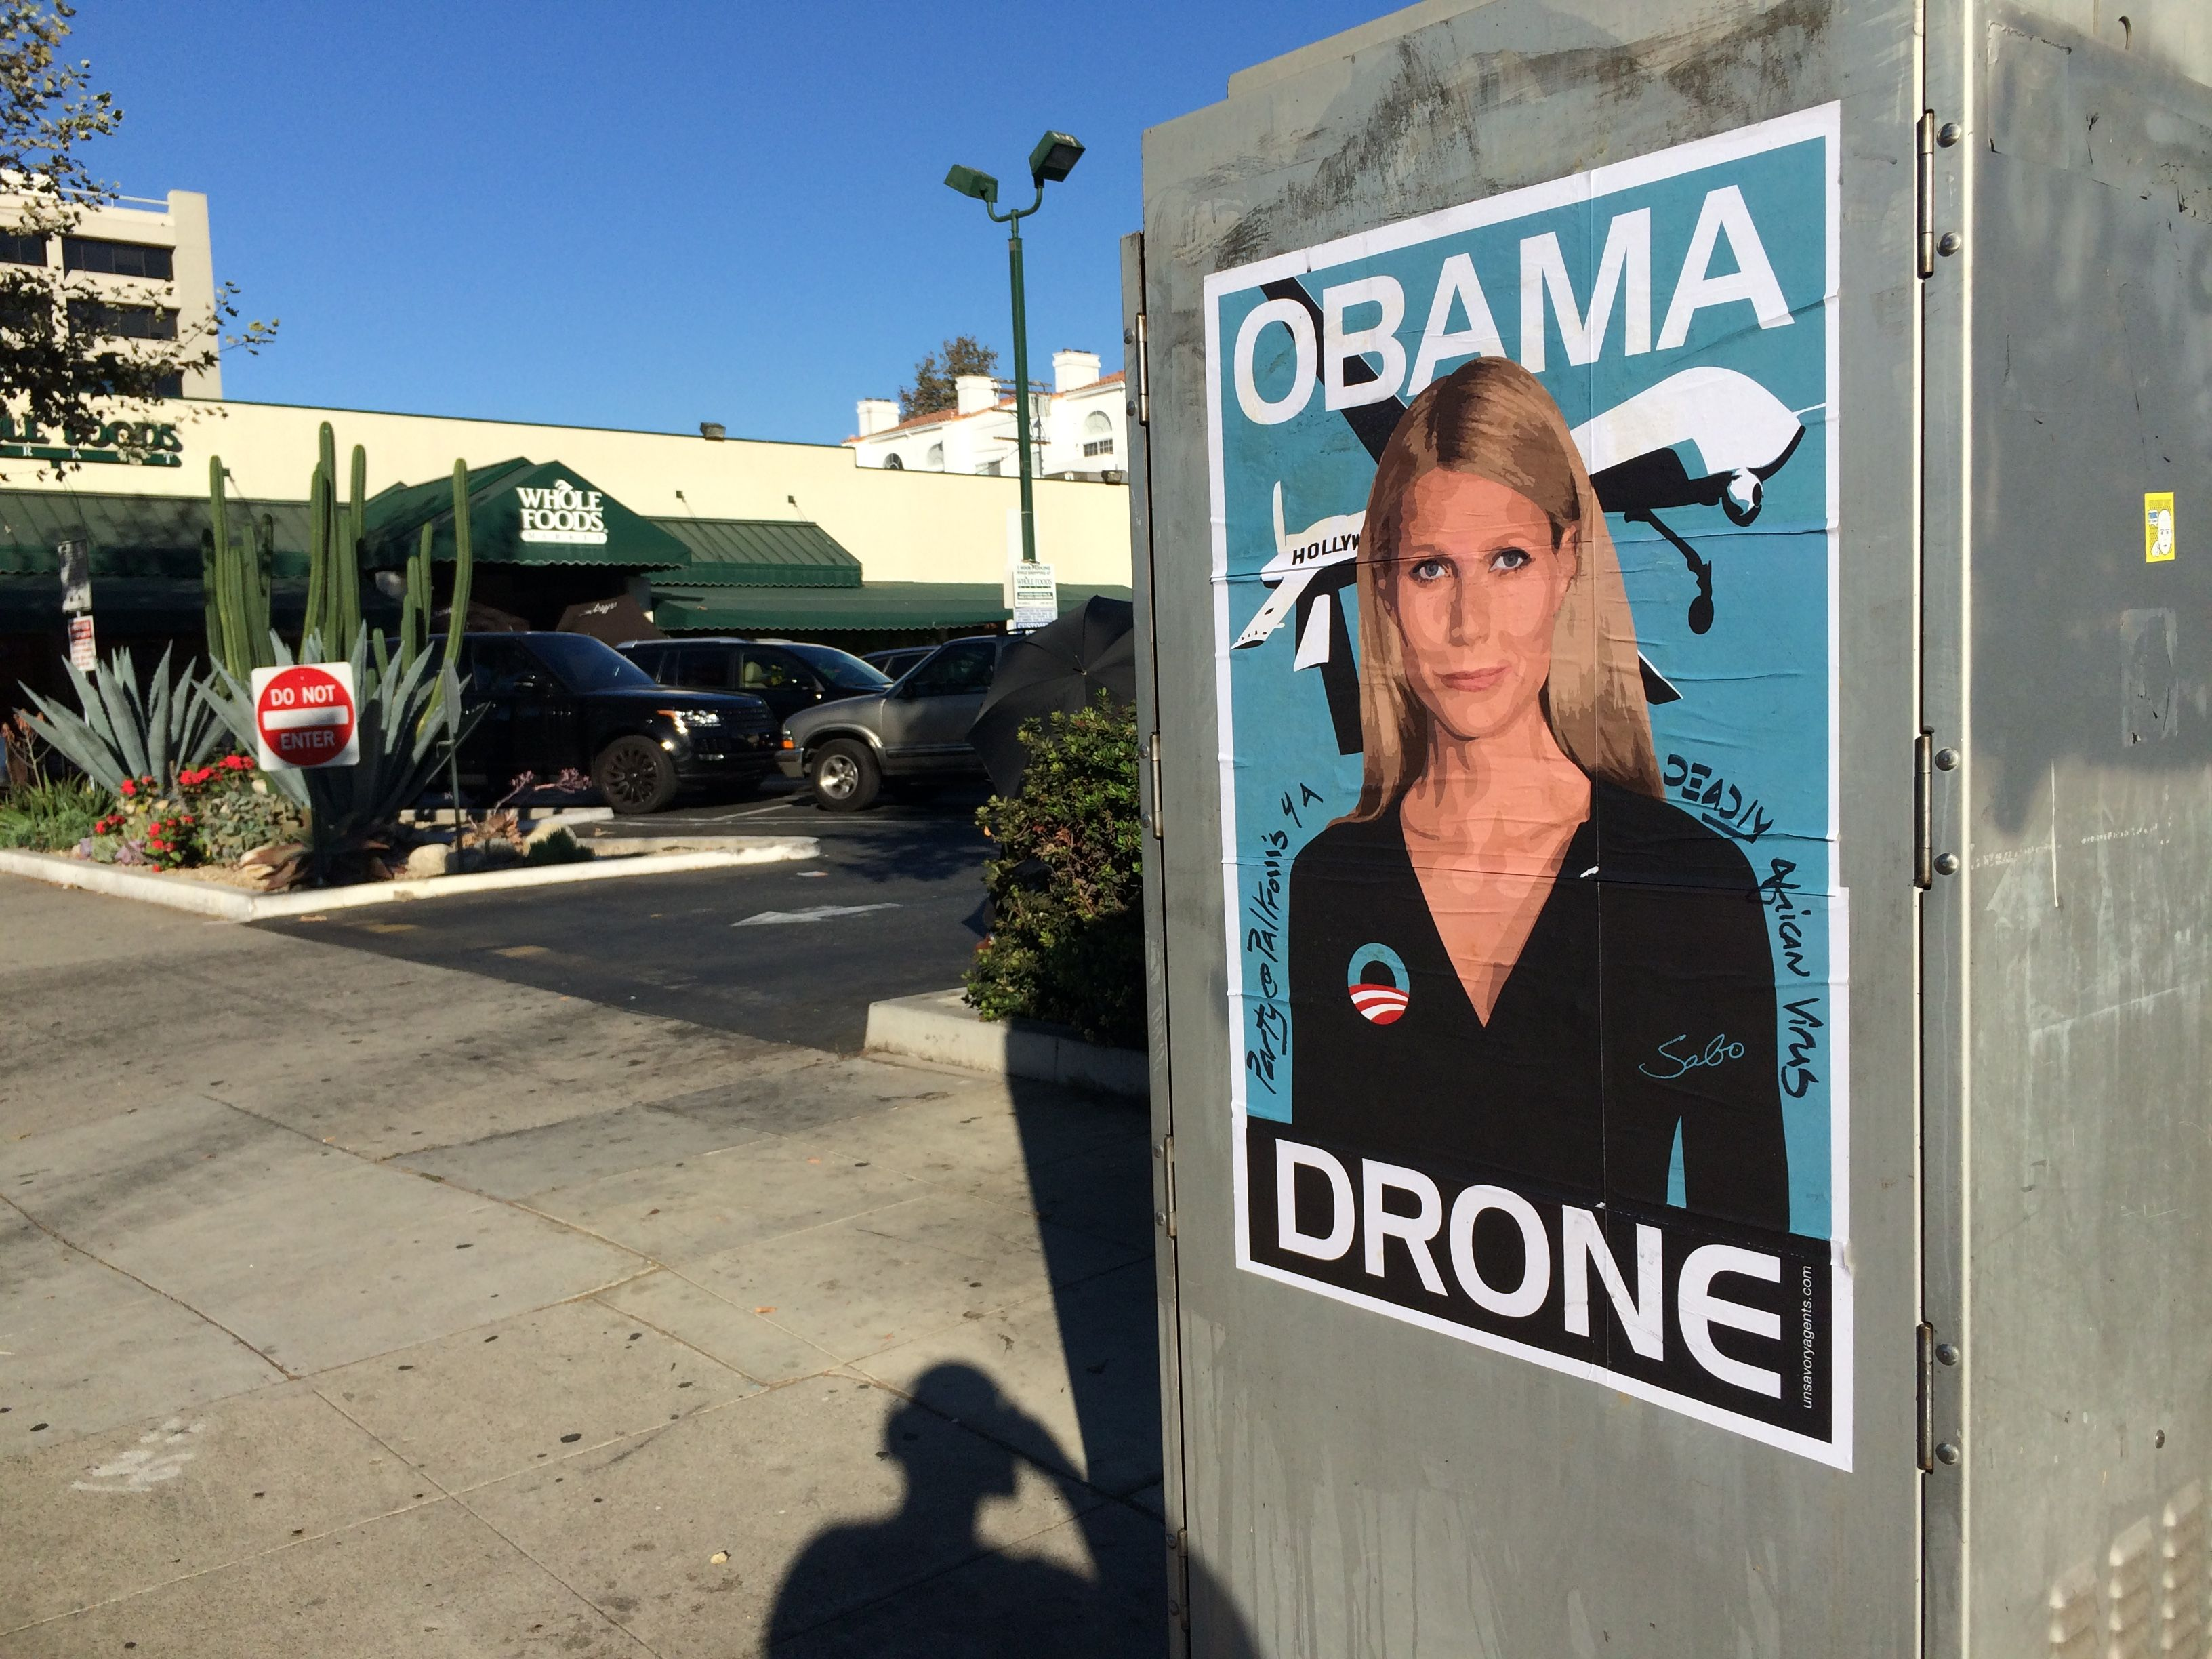 Gwyneth Paltrow Obama Drone posters poster Sabo President Obama DNC fundraiser L.A. Los Angeles Brentwood neighborhood neighbor neighbors hang hanging hung signs plaster plastering plastered traffic signal box boxes lamp posts bus benches anonymous conservative street artist provocative controversial subversive Unsavory Agents UnsavoryAgents outside political Democrats Democrat drones Predator plane planes flying background actor actress home house host hosting gala whole foods market wholefoods